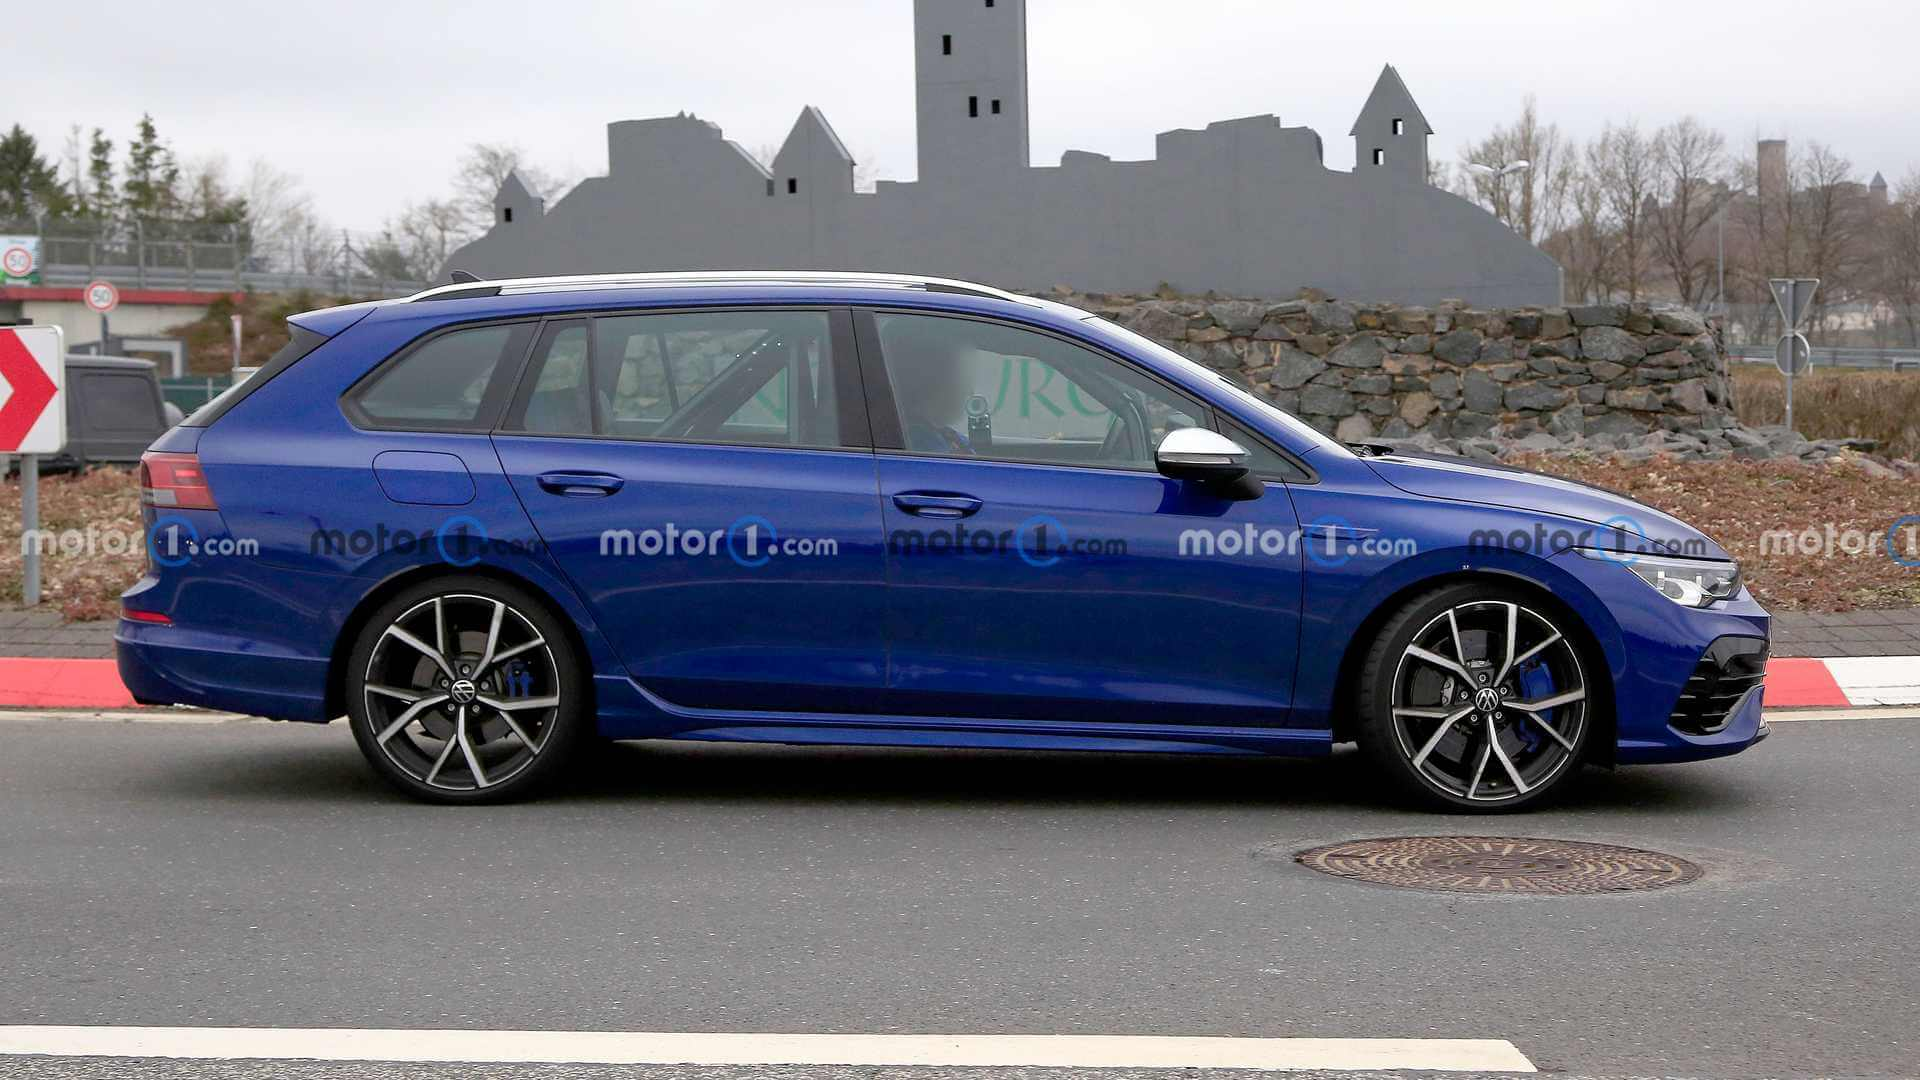 Будущий «сарай» Volkswagen Golf R замечен в окрестностях Нюрбургринга.